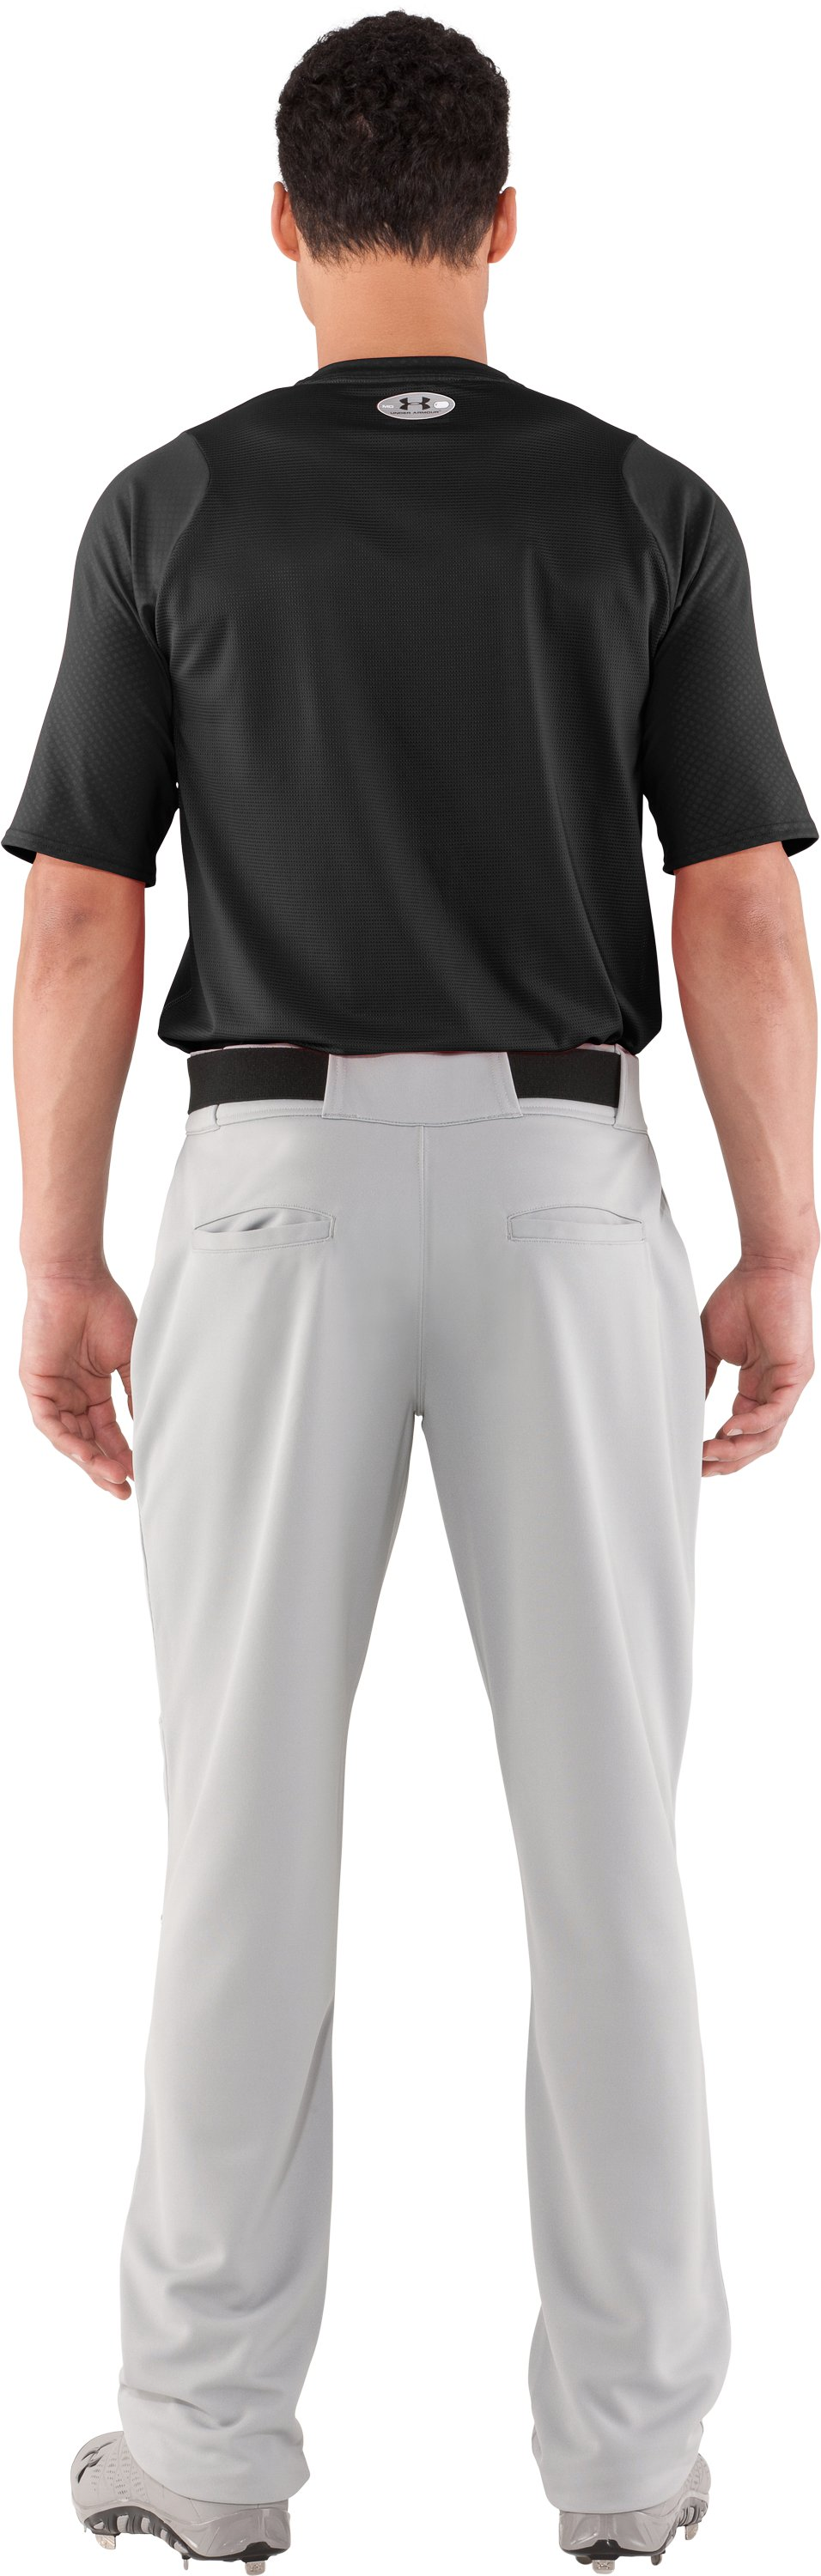 Men's UA Diamond Armour™ Baseball Short Sleeve Baselayer, Black , Back